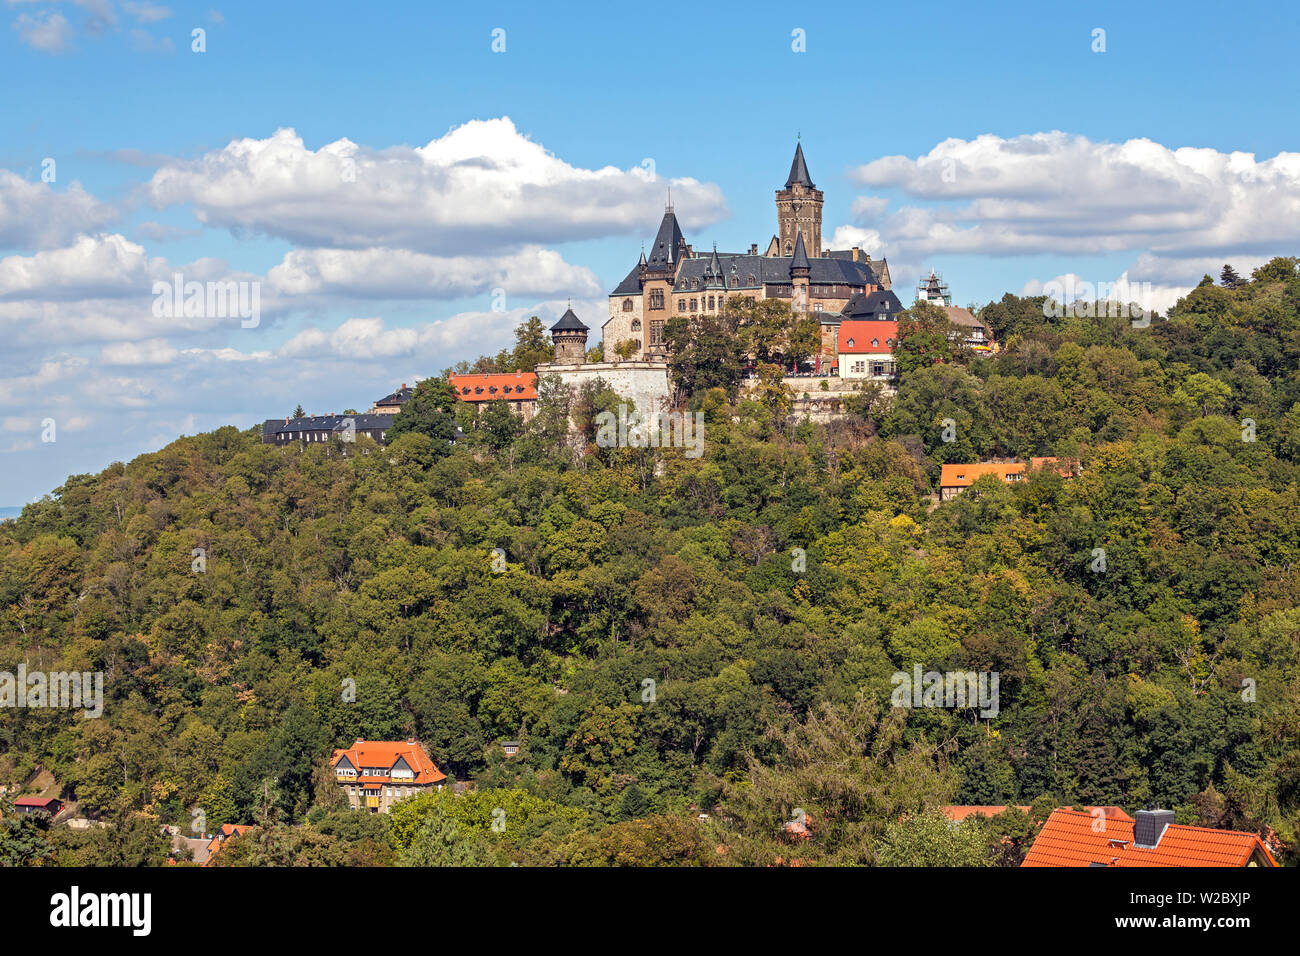 Wernigerode Castle at the foot of the Harz Mountains, Wernigerode, Saxony-Anhalt, Germany - Stock Image